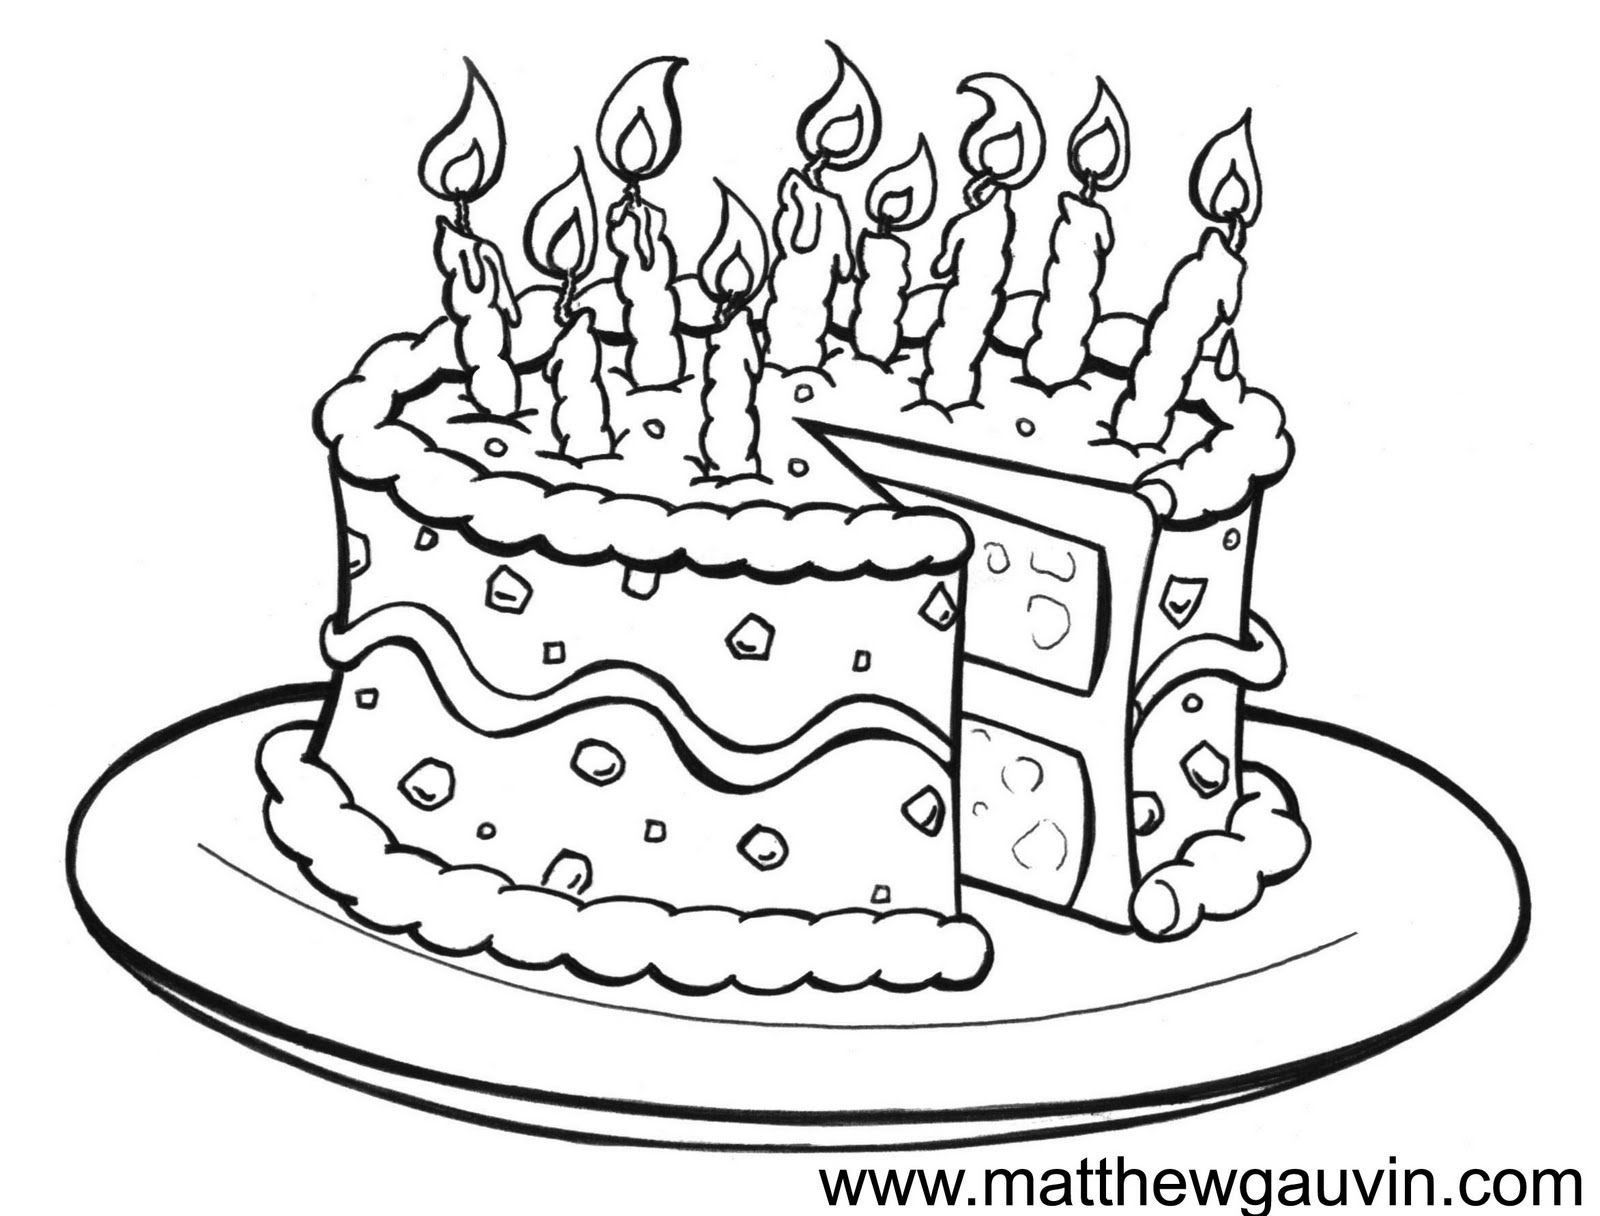 Pictures Of Birthday Cakes Drawings : birthday drawings MG Children s Book Illustrations ...